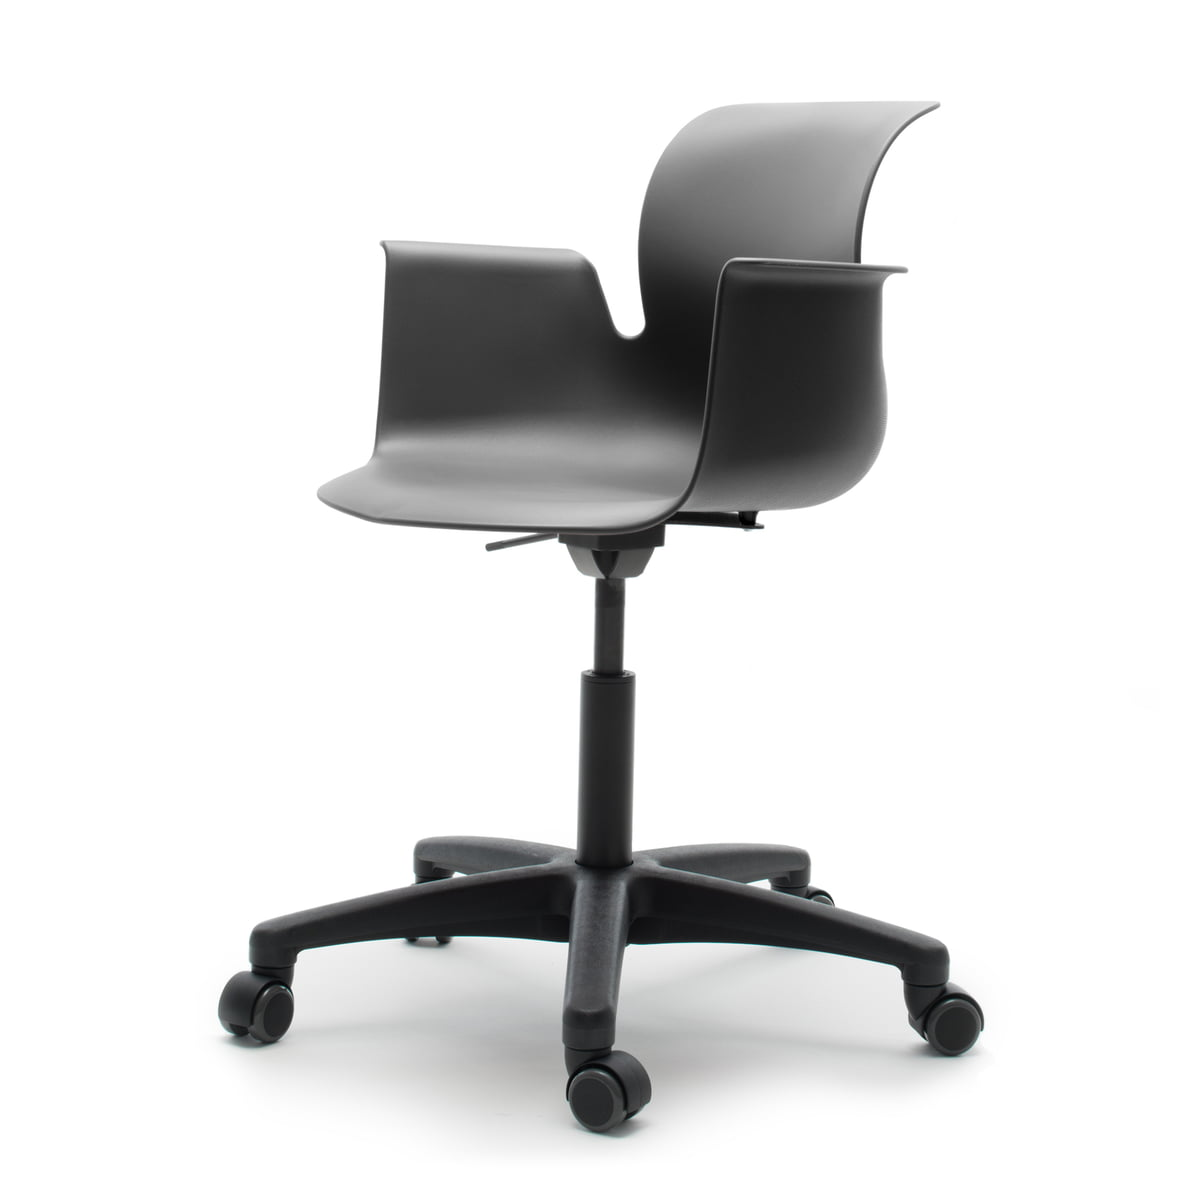 the pro 6 swivel armchair by flötotto